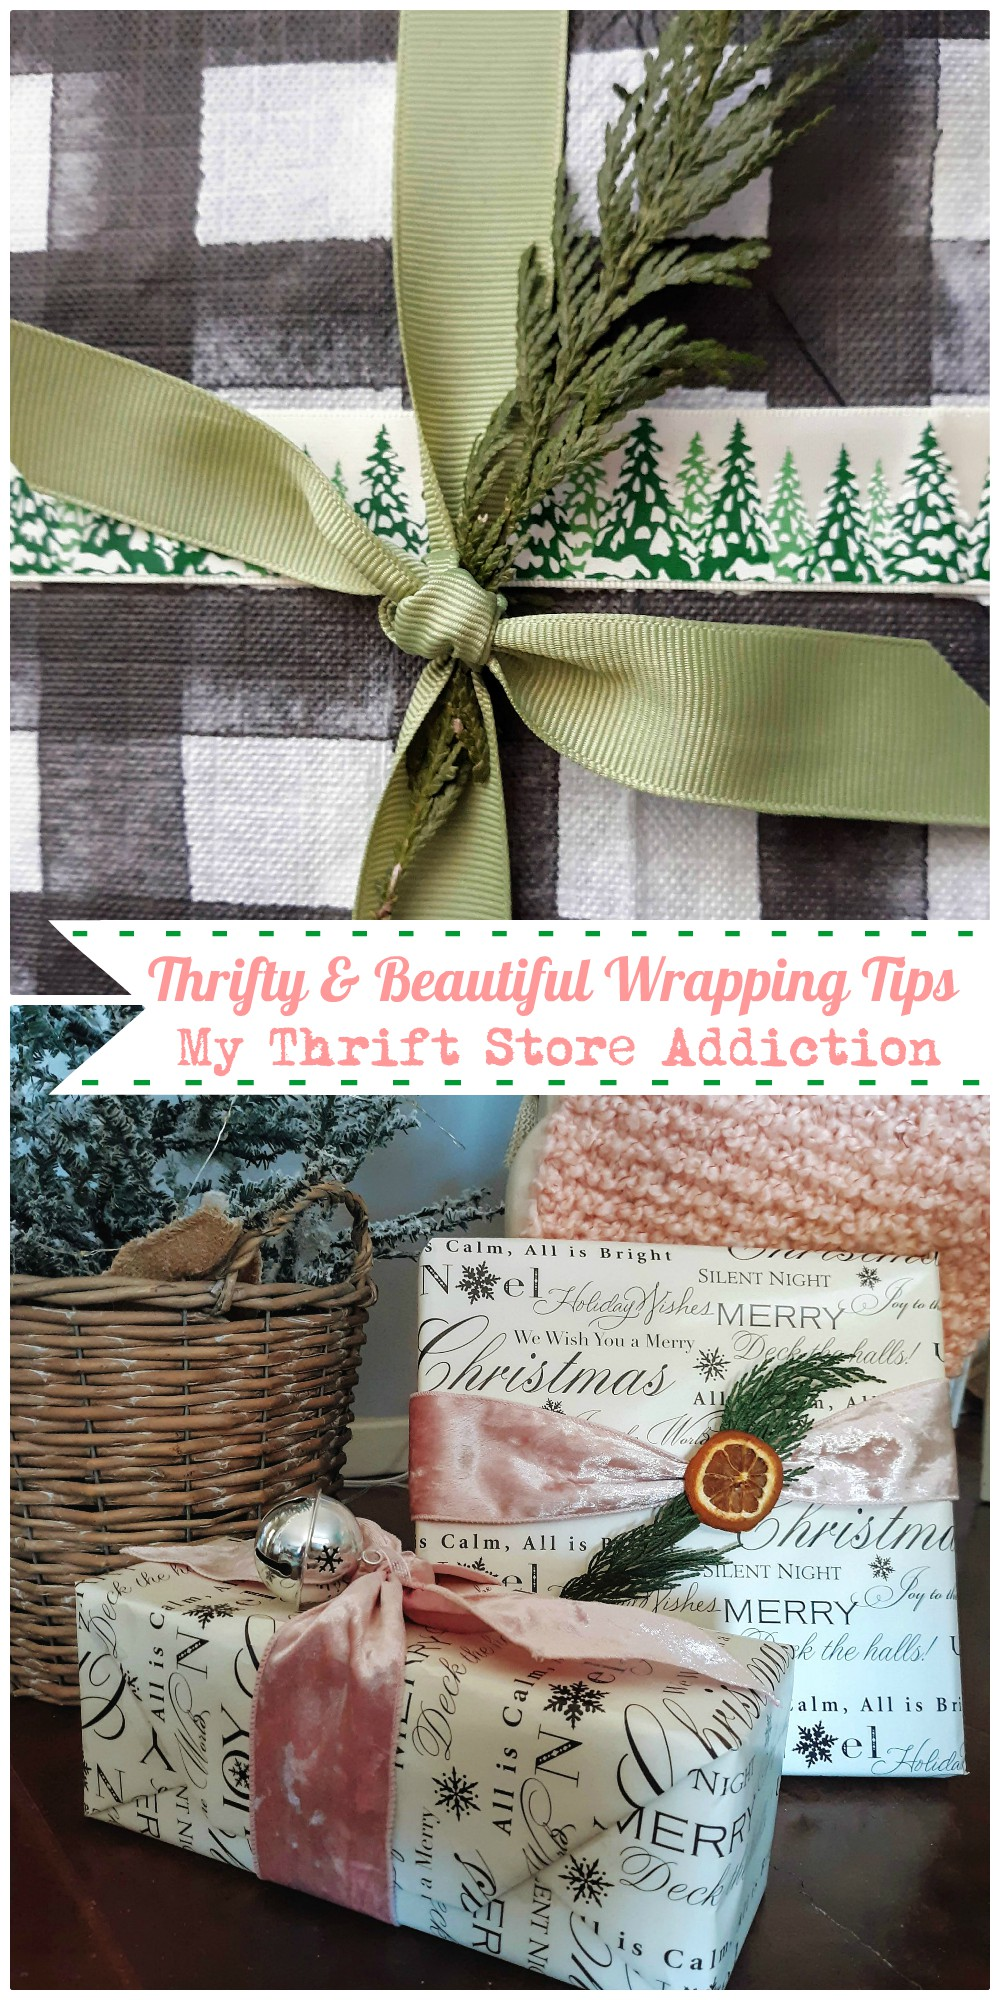 Thrifty & beautiful wrapping tips